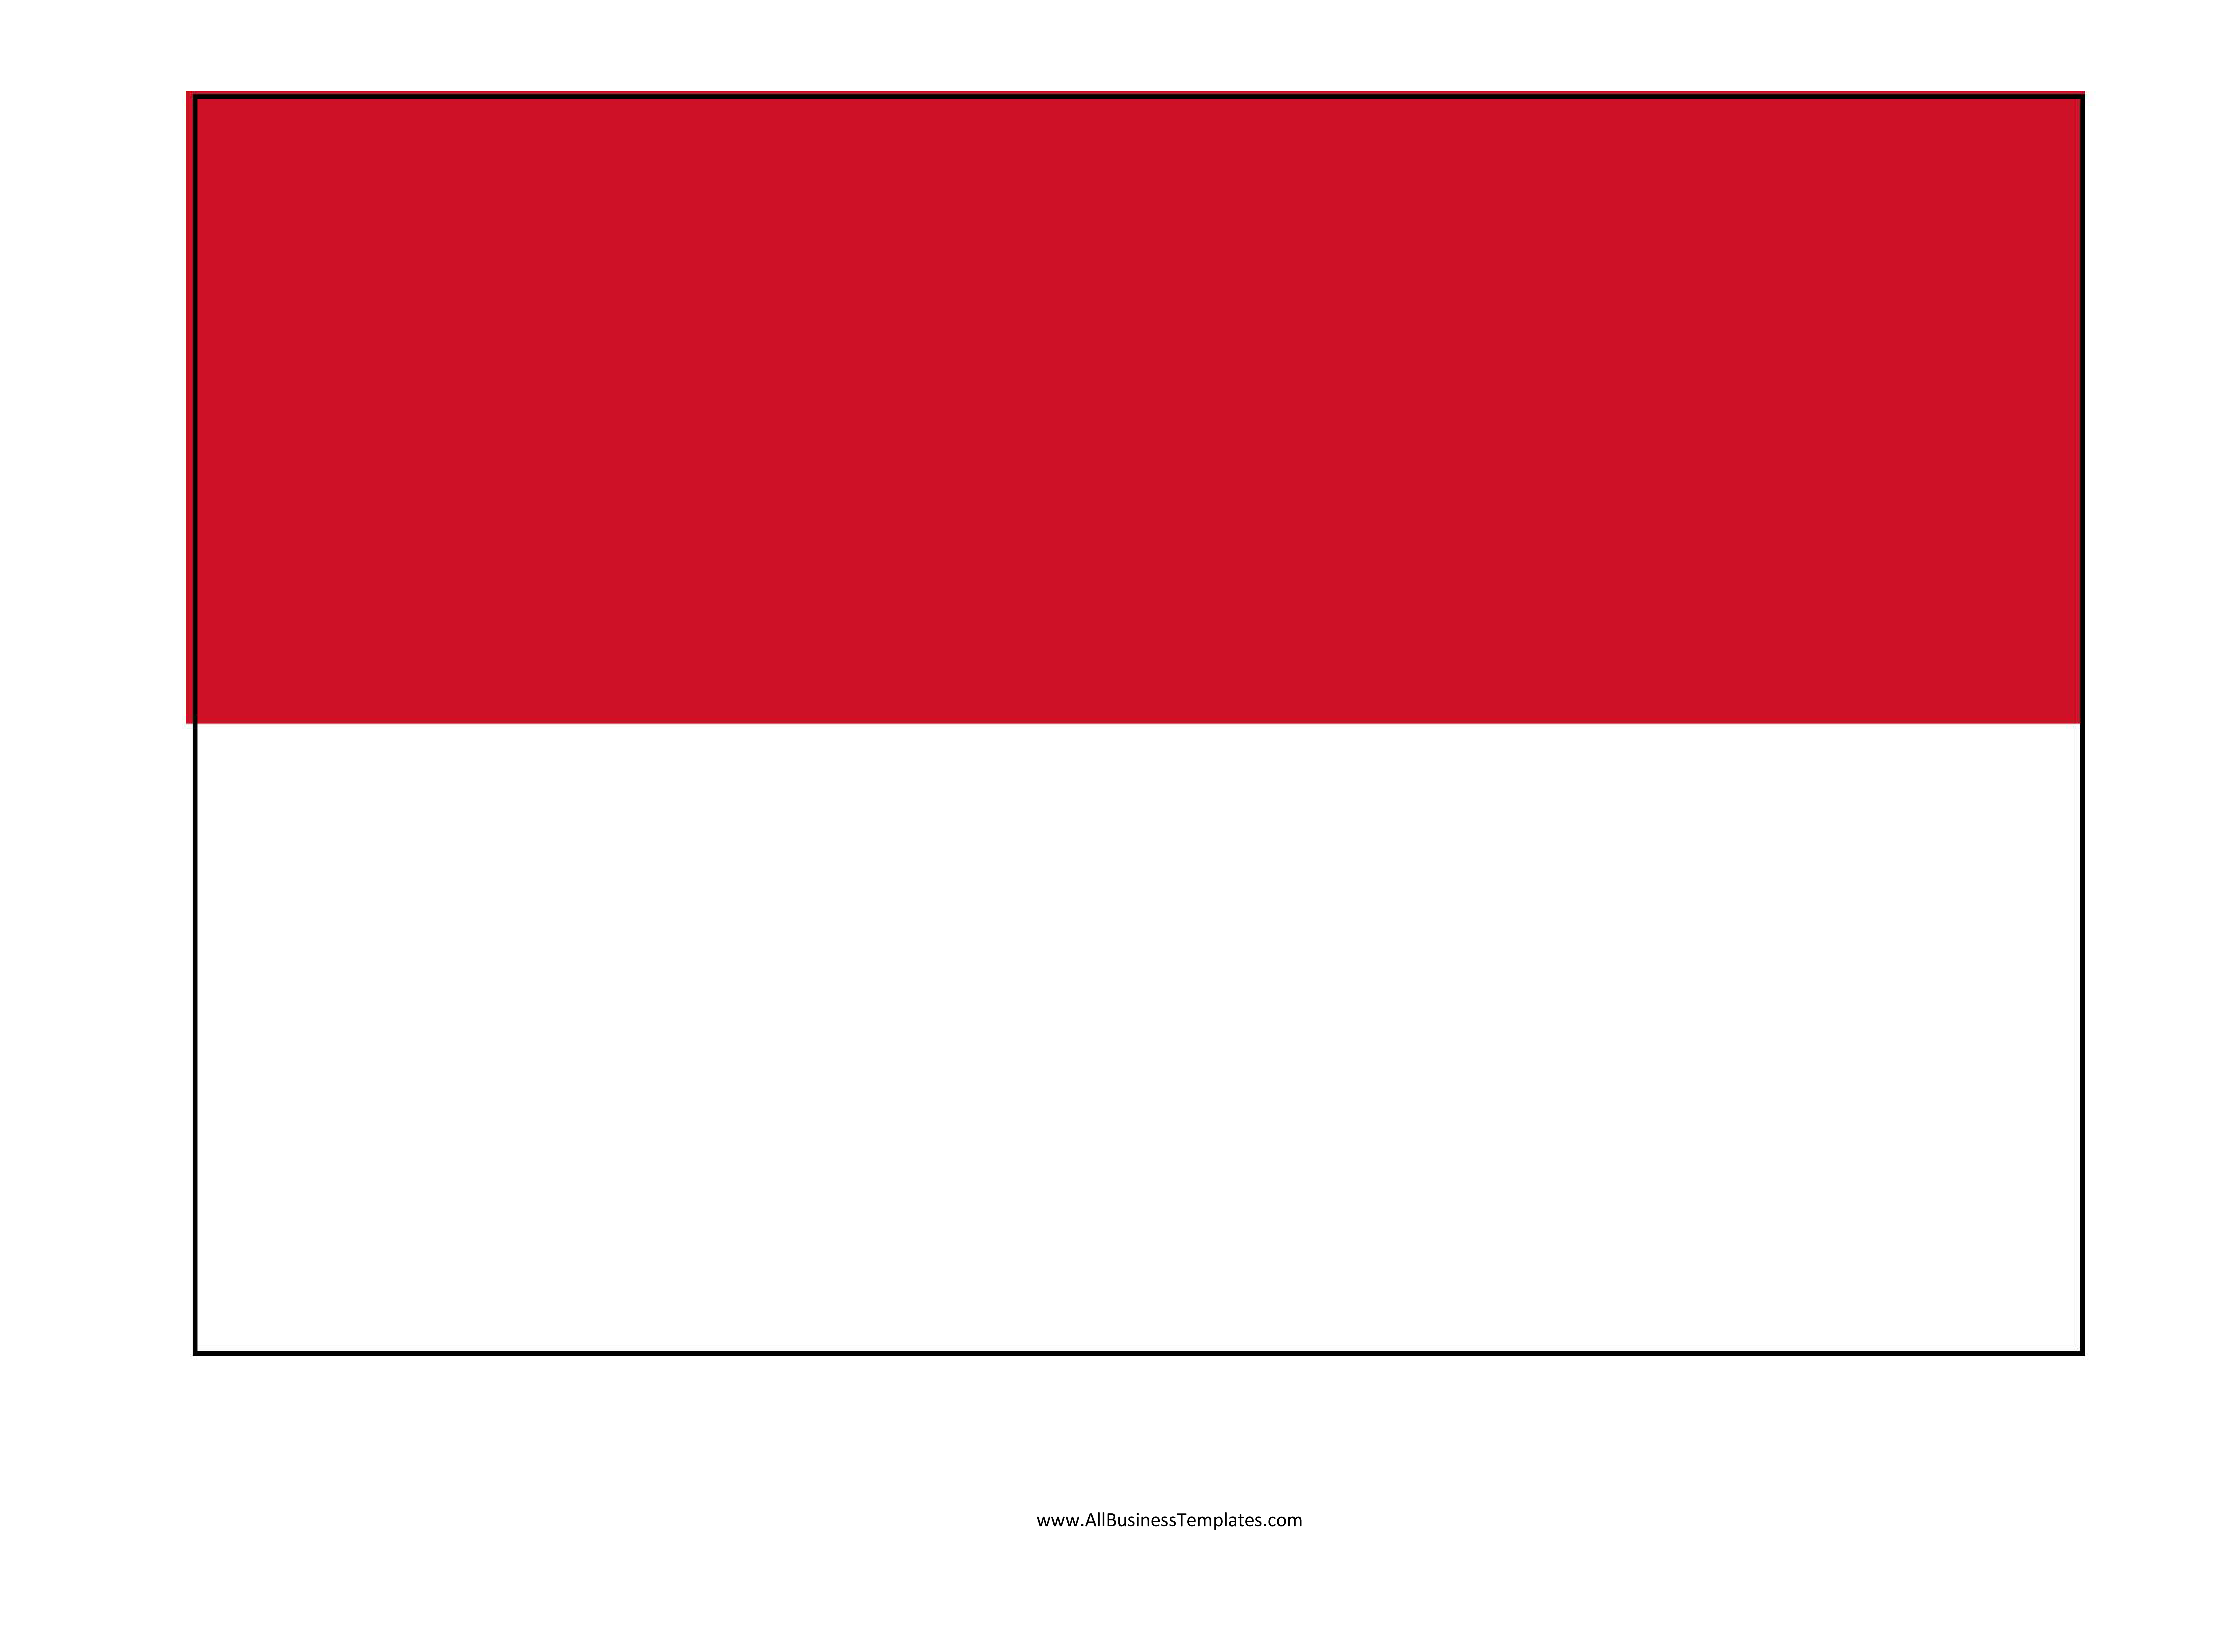 Indonesia printable flag - Download this Indonesia printable ...